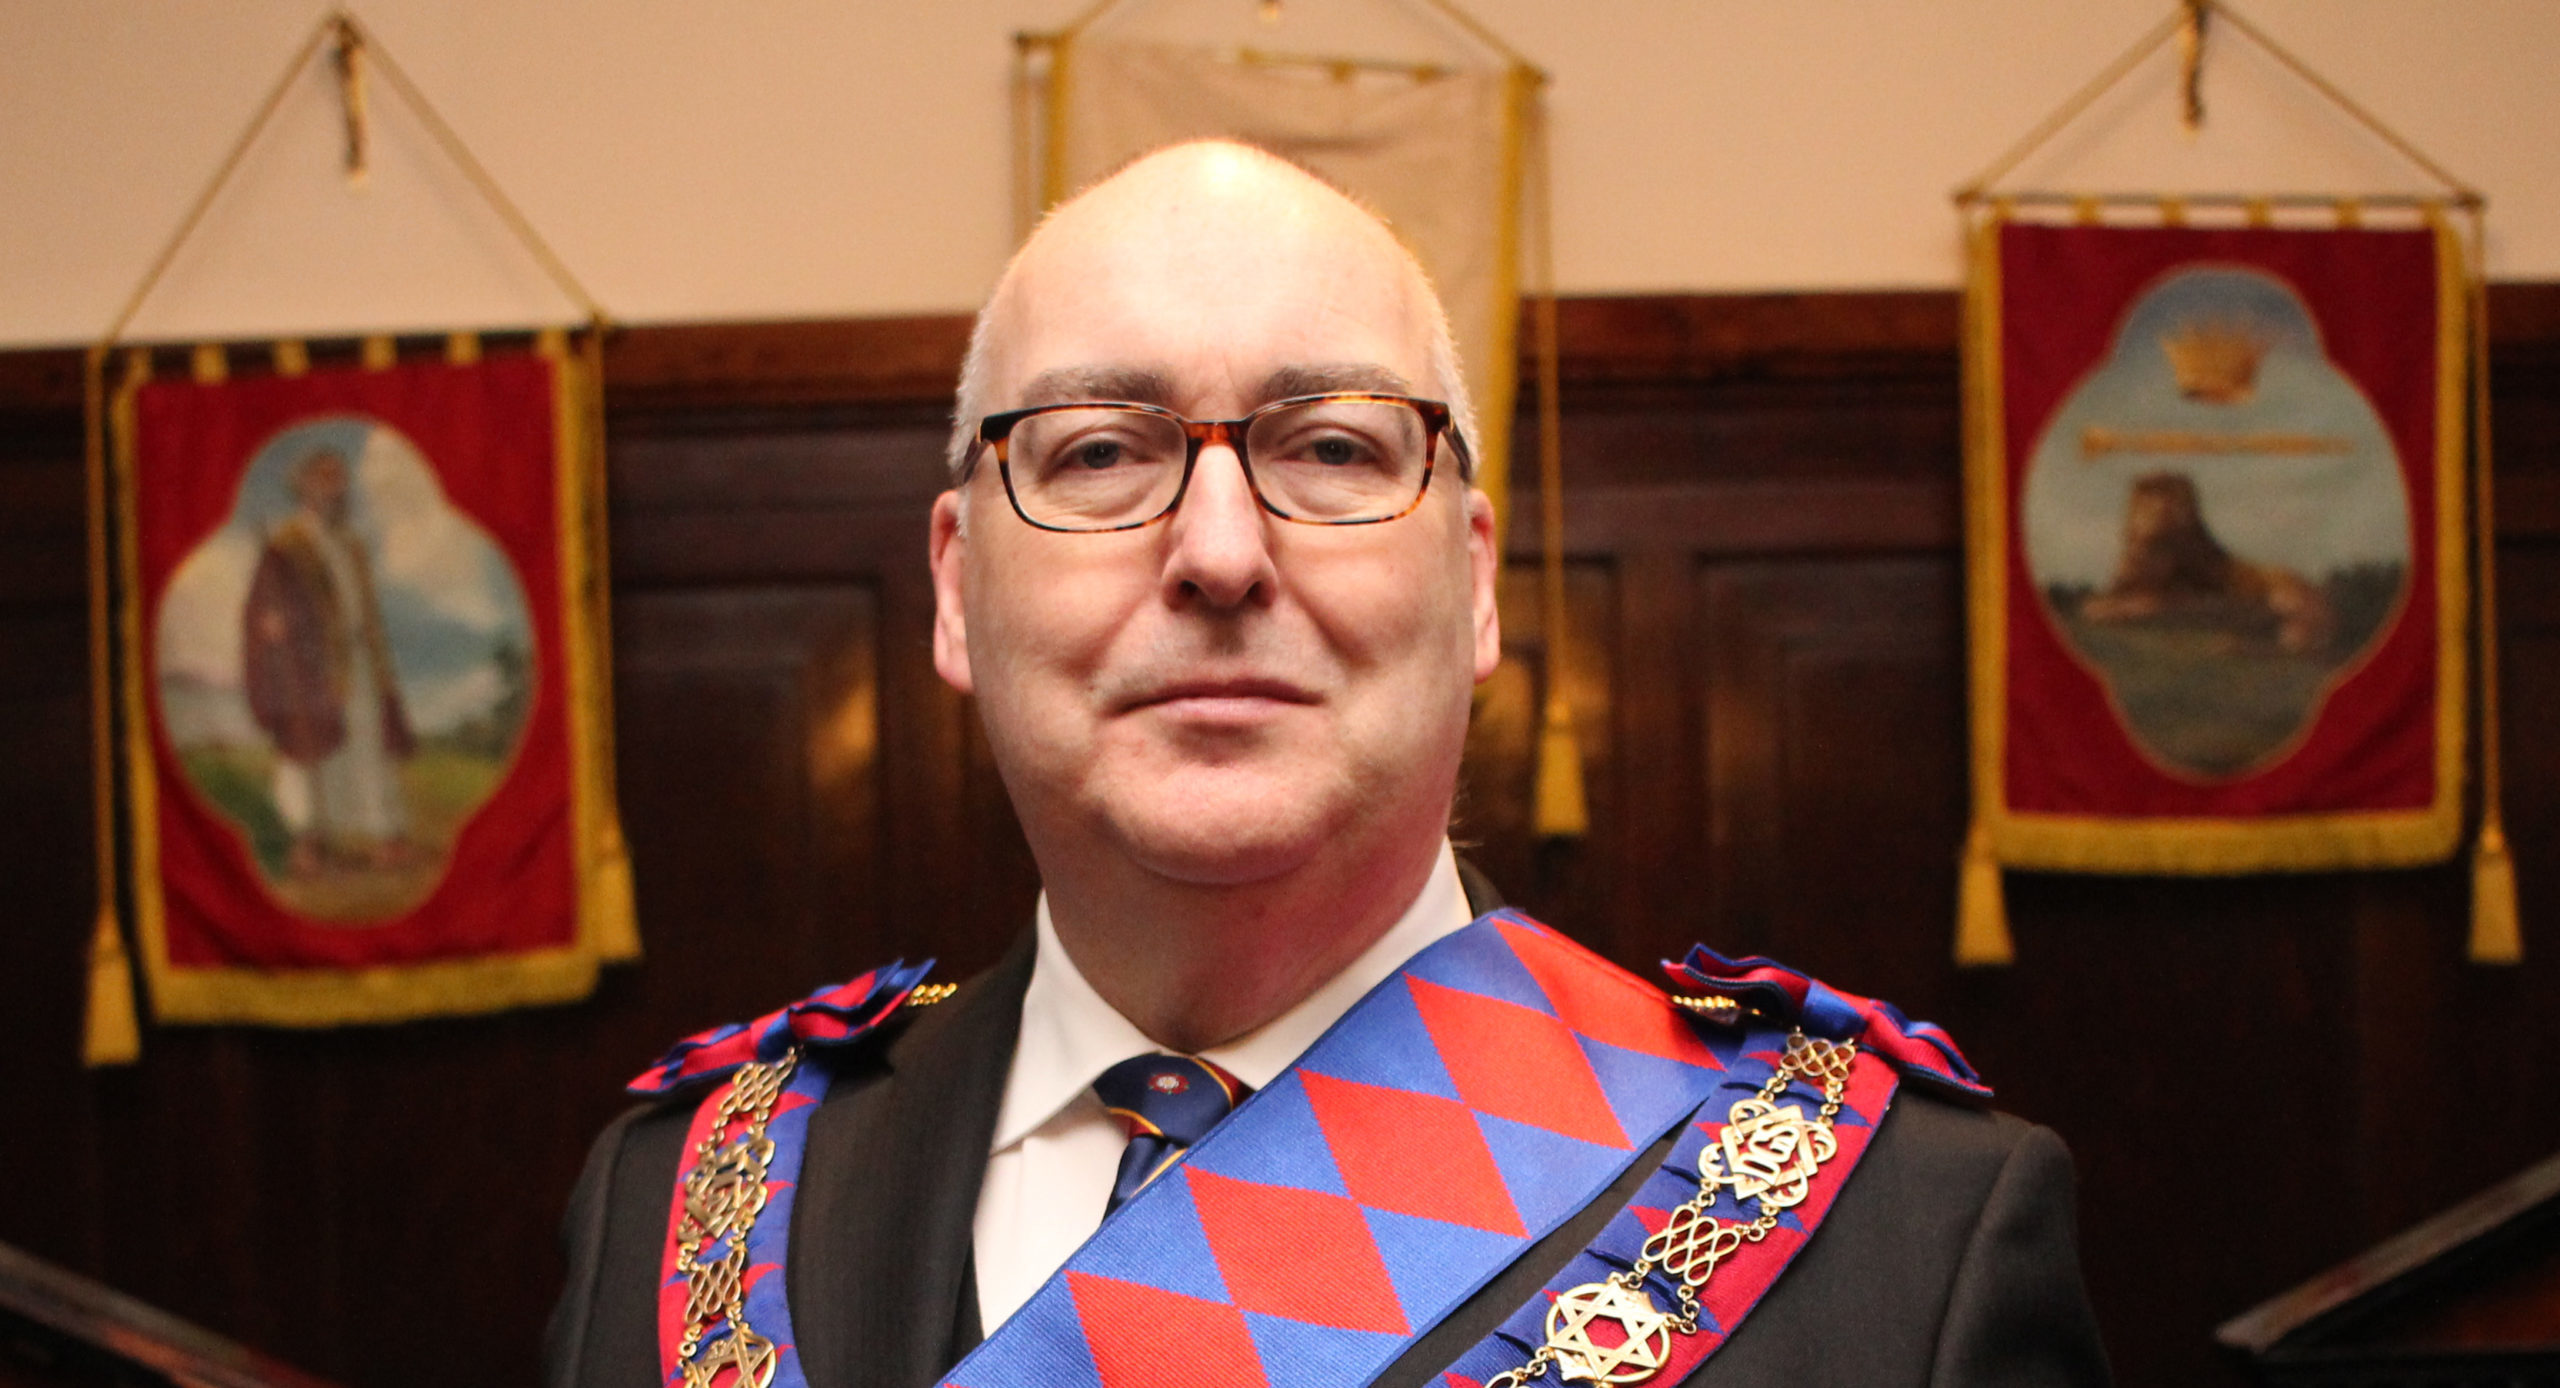 Manchester Masons interview Martin Roche (PGSec / Deputy Grand Superintendent)